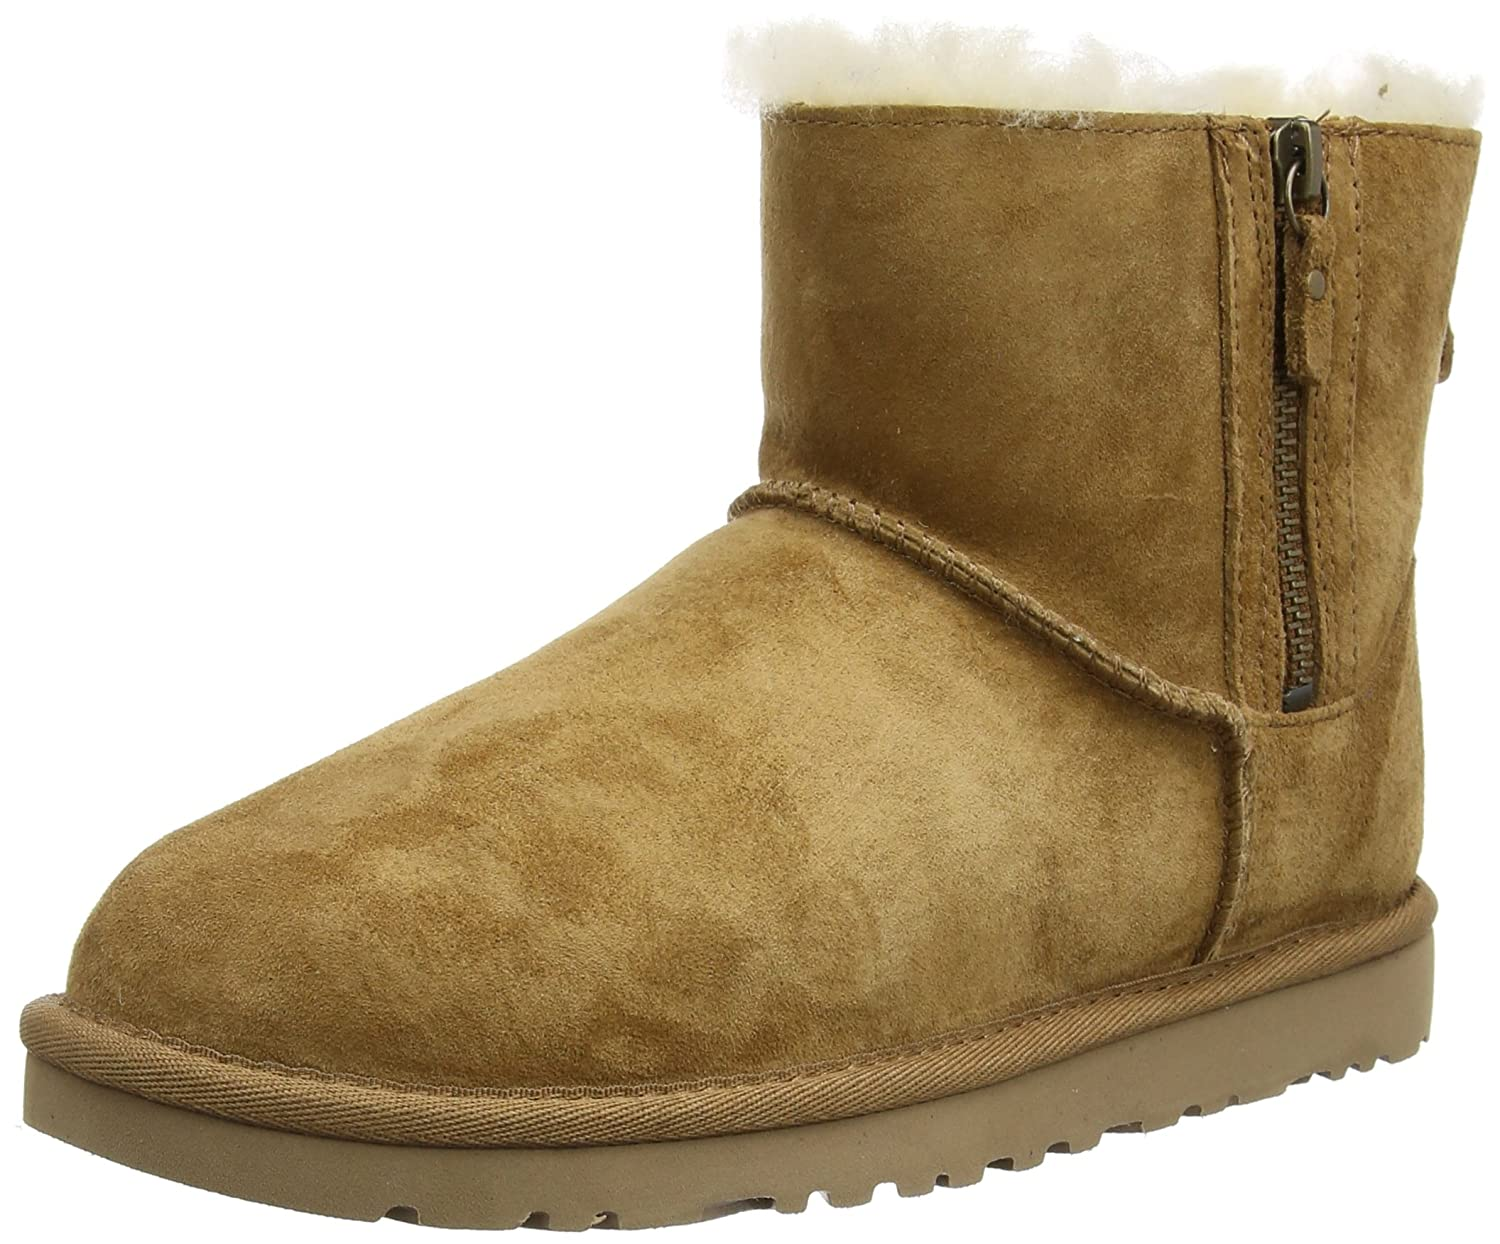 Ugg Australia Classic Mini Double Zip, Women's Boots, Brown (Chestnut), 5.5 UK (38 EU)